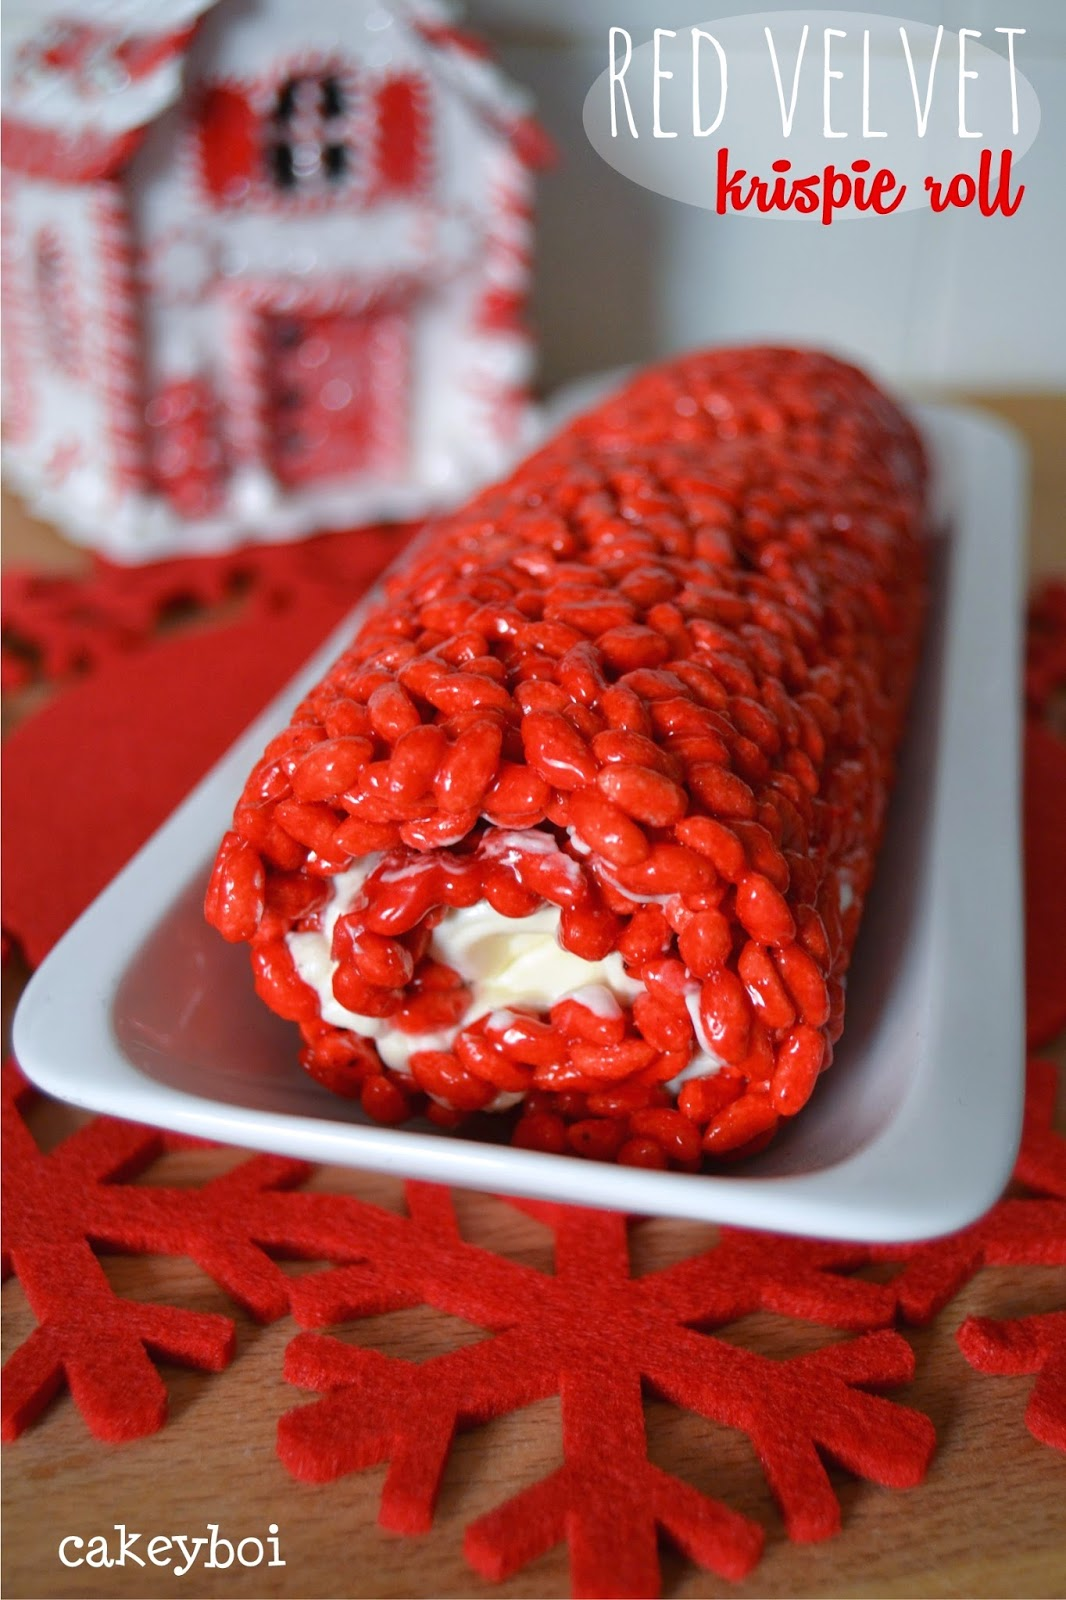 red velvet krispie treats in a festive log shape